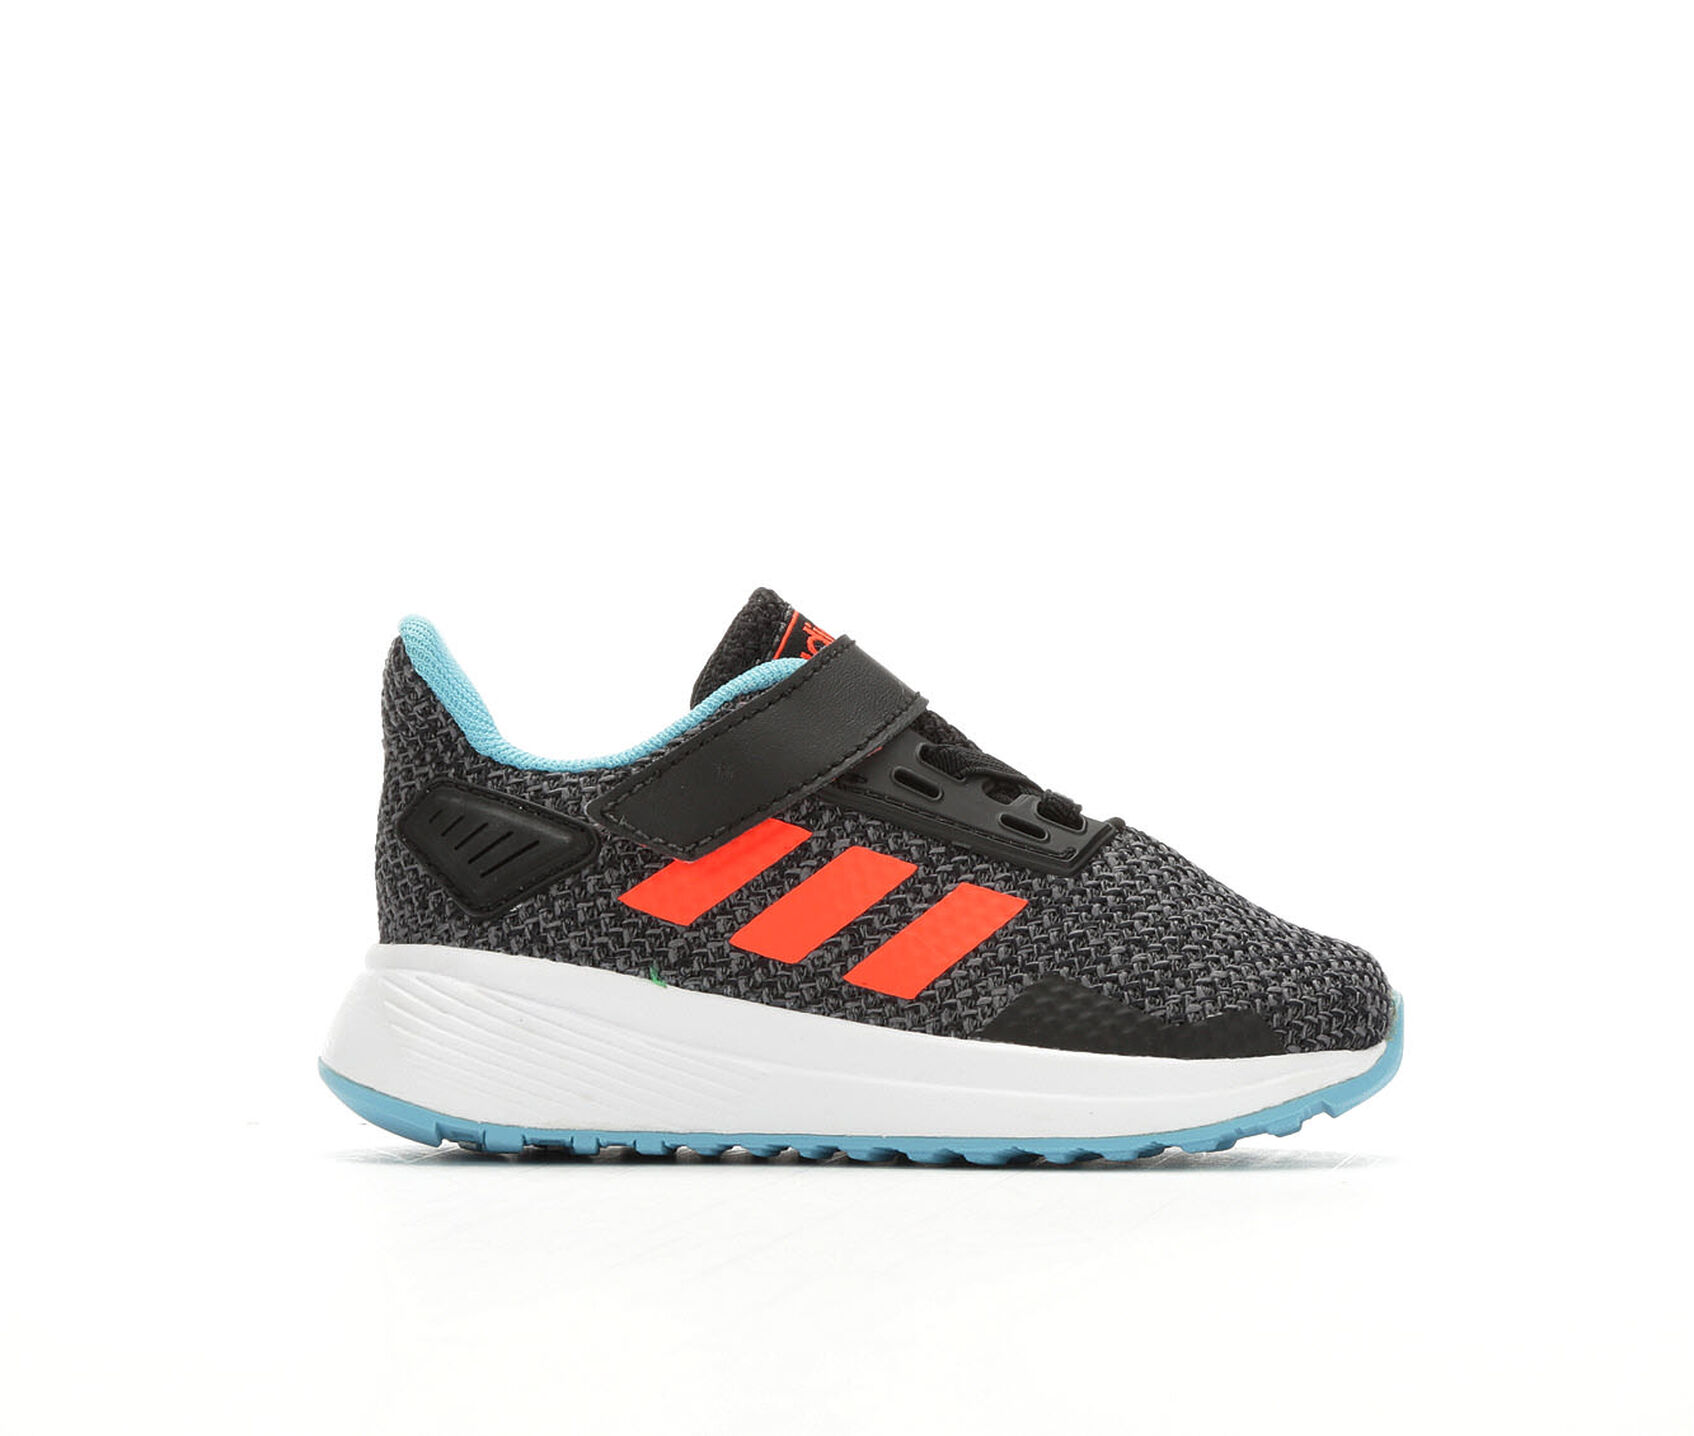 ebe6bab4d ... Adidas Infant  amp  Toddler Duramo Athletic Shoes. Previous